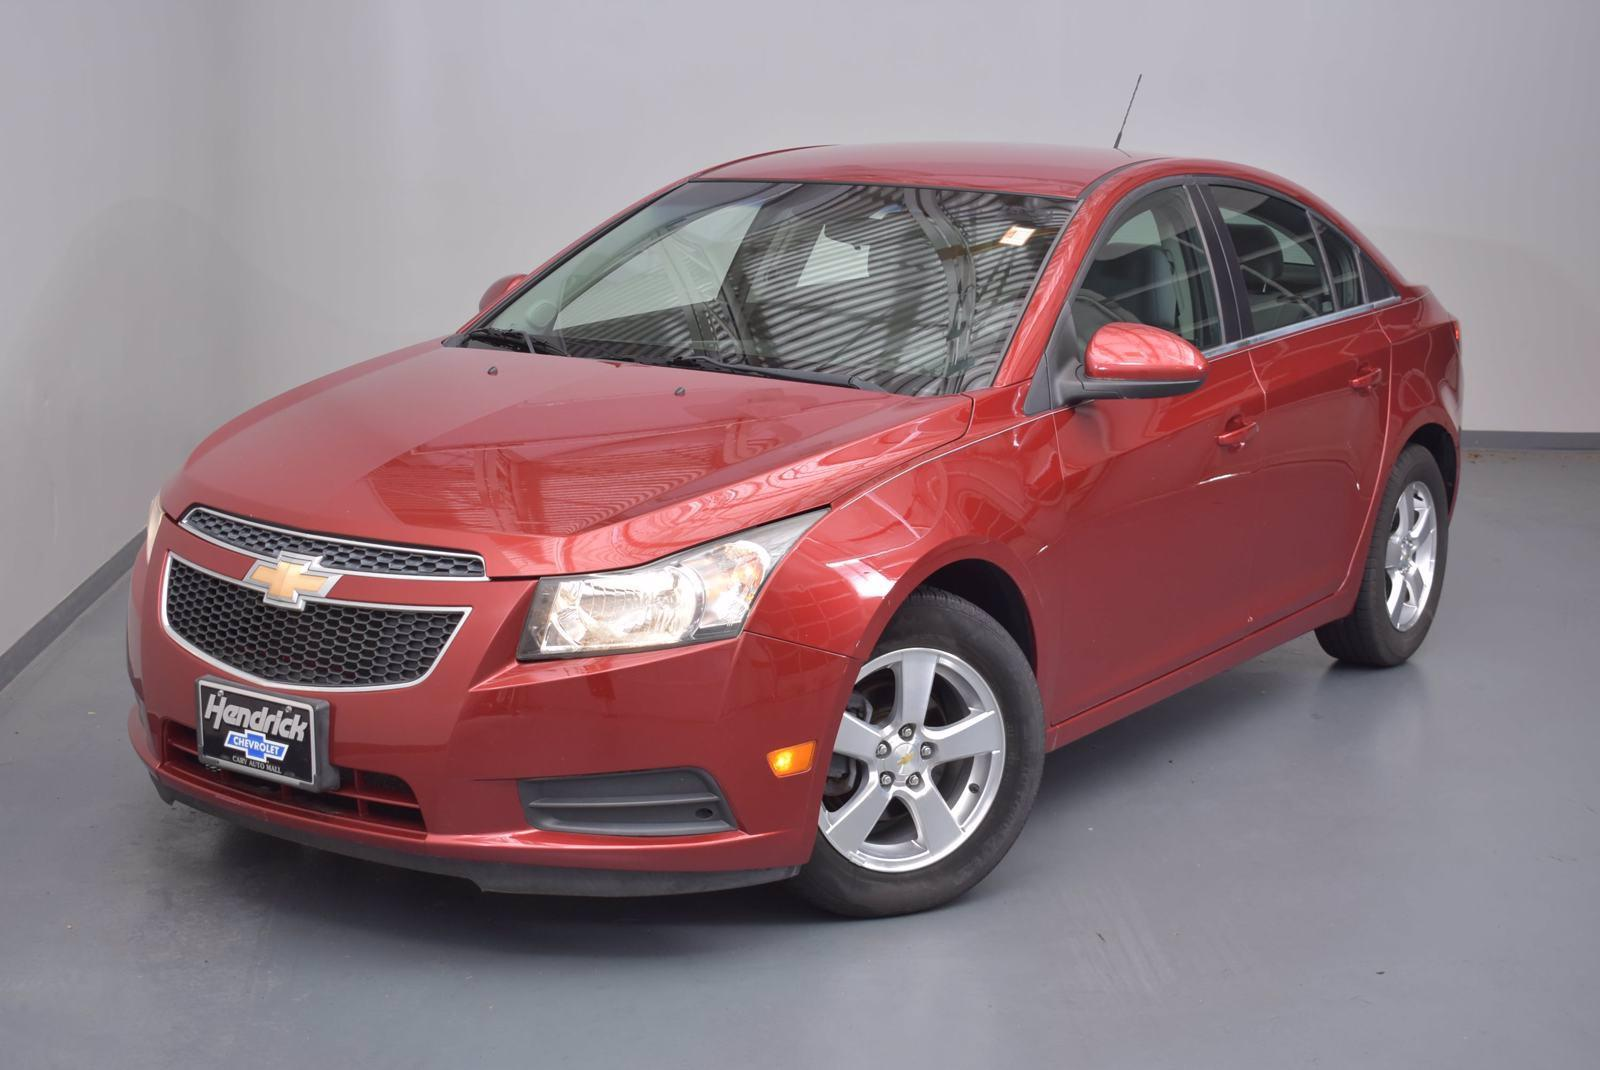 2011 Chevrolet Cruze Vehicle Photo in Cary, NC 27511